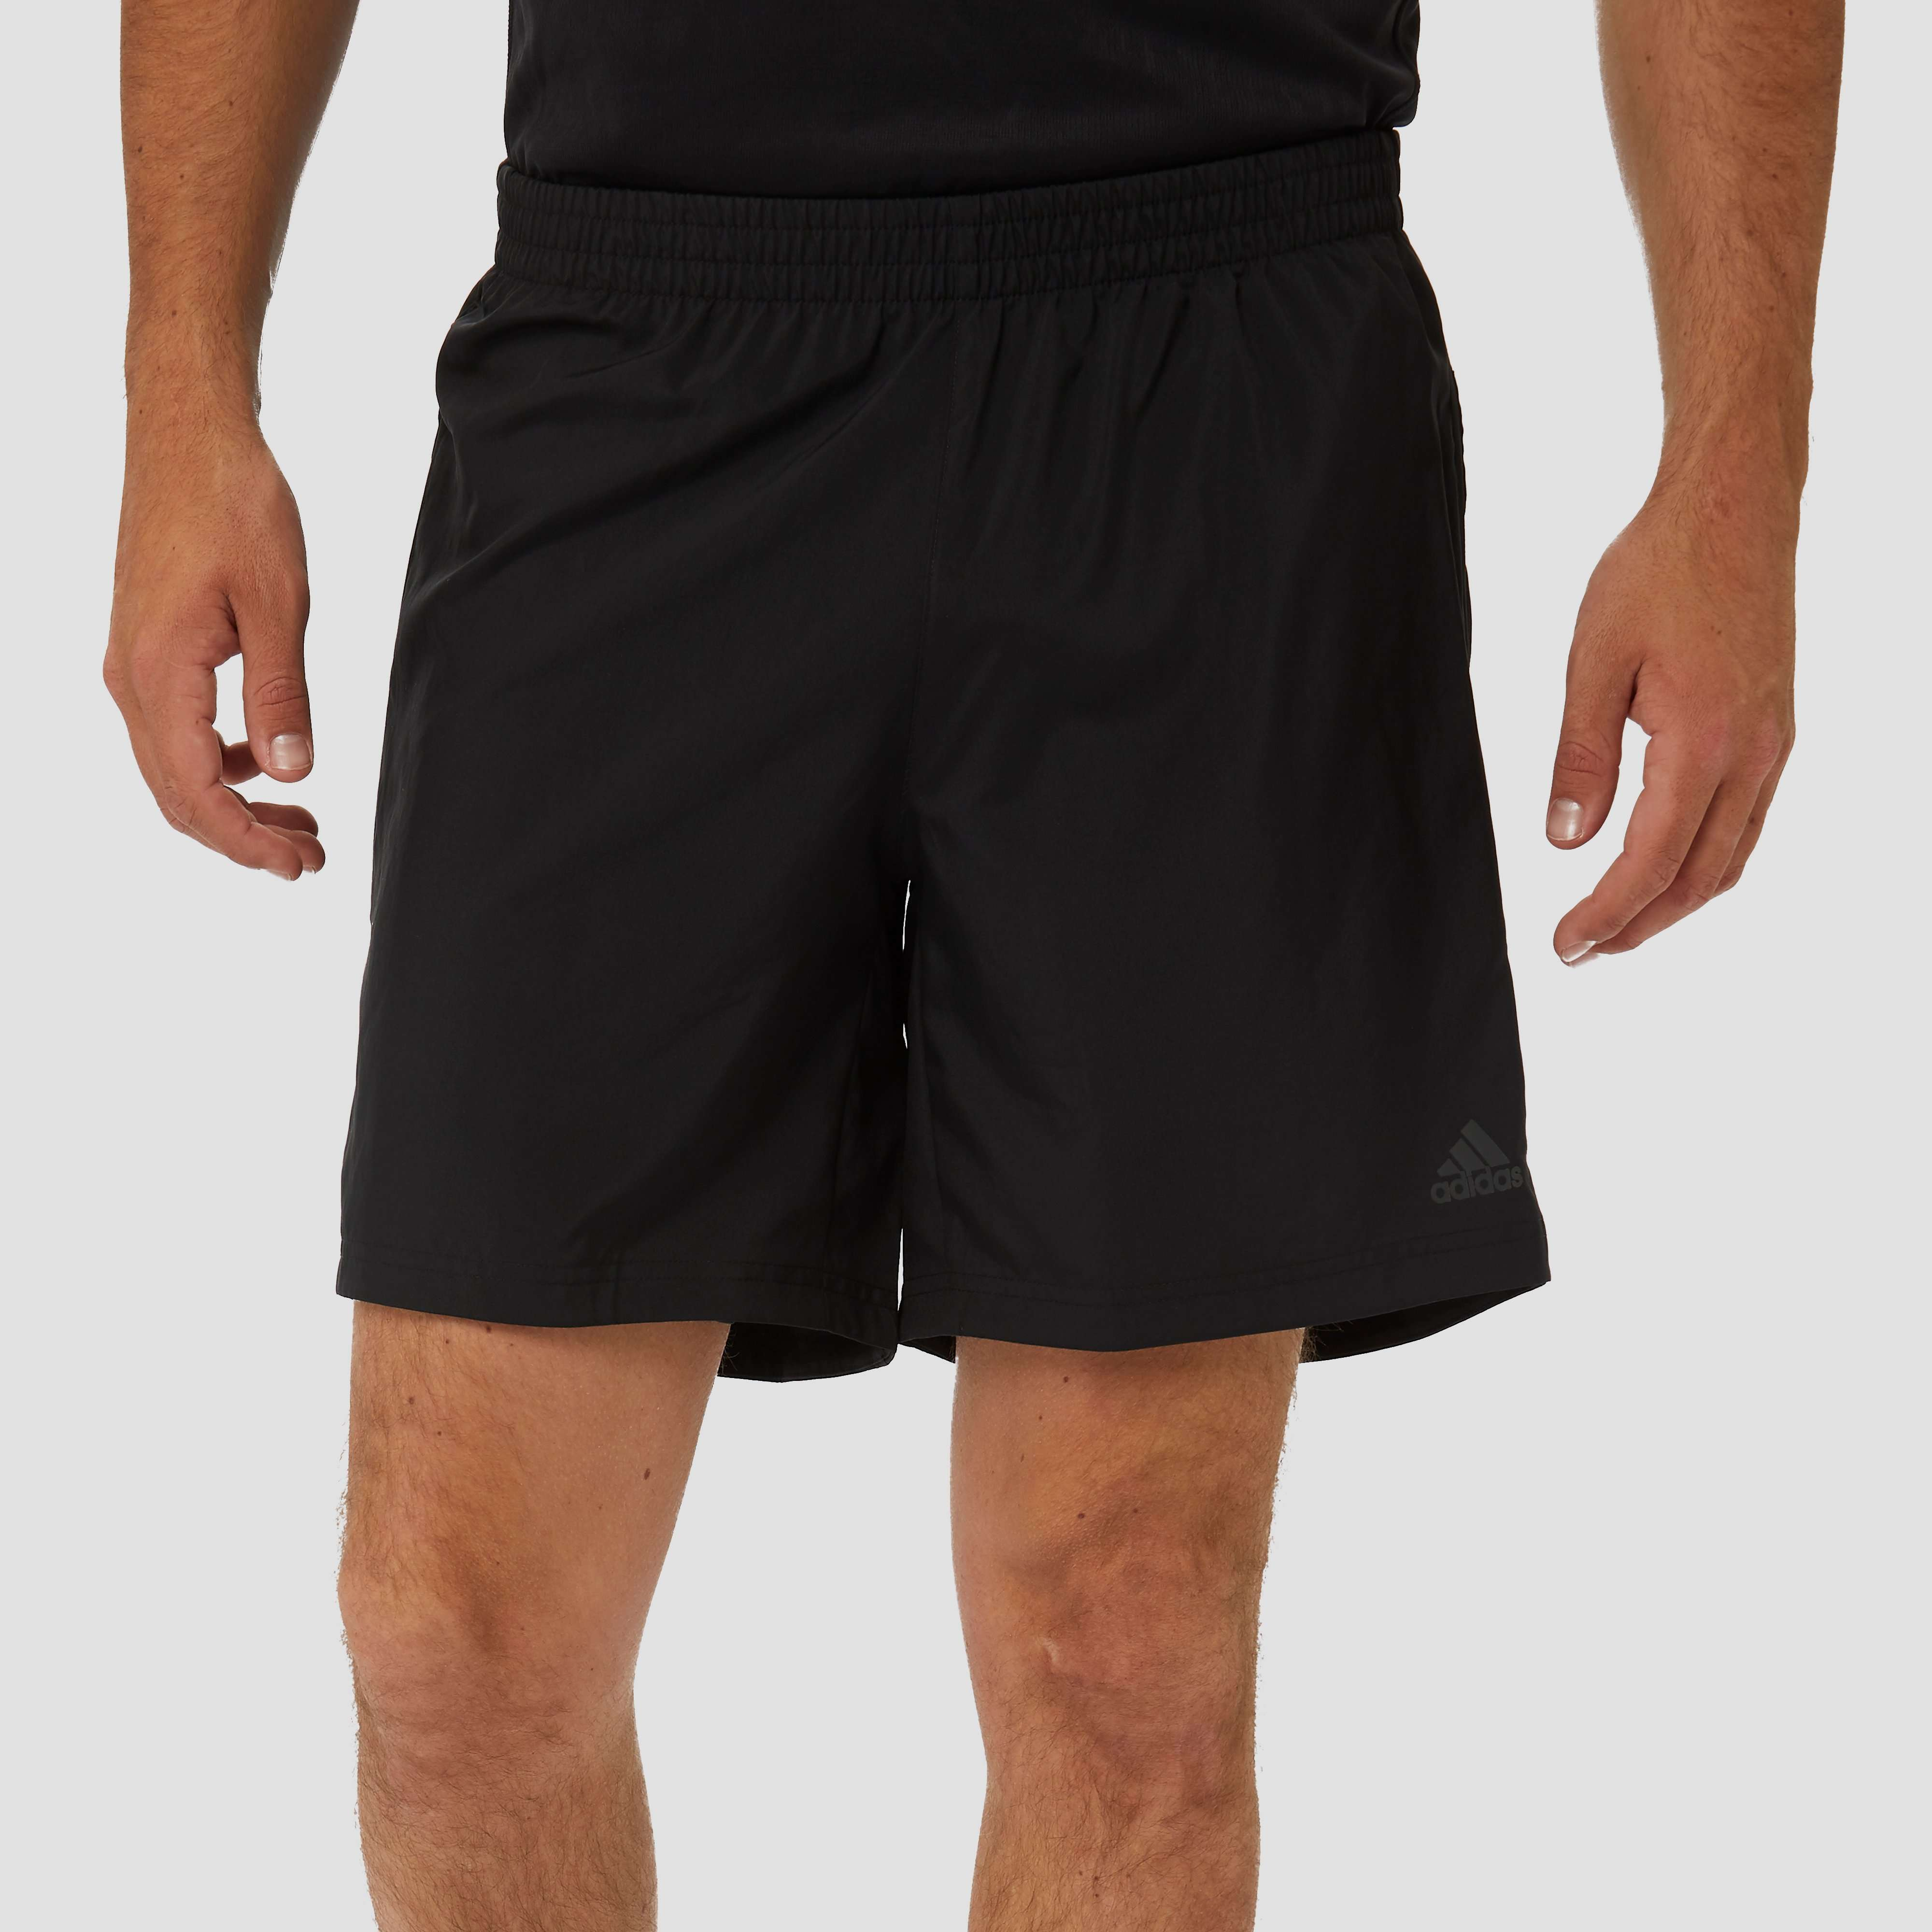 ADIDAS OWN THE RUN HARDLOOPSHORT ZWART HEREN | Perrysport